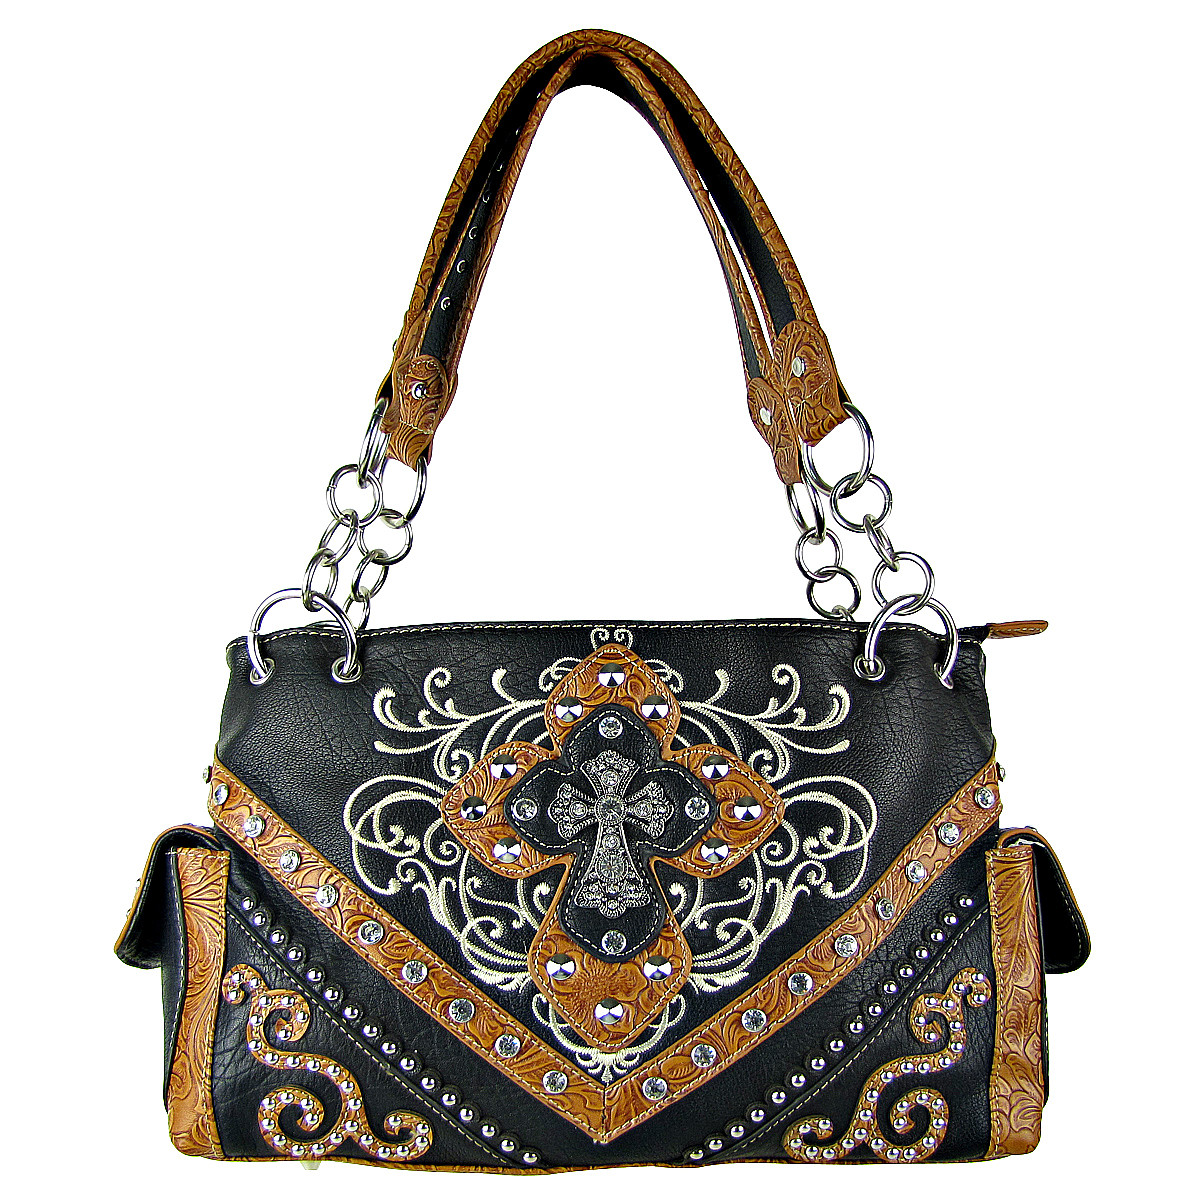 BLACK STUDDED RHINESTONE STITCHED CROSS LOOK SHOULDER HANDBAG HB1-HL12980BLK